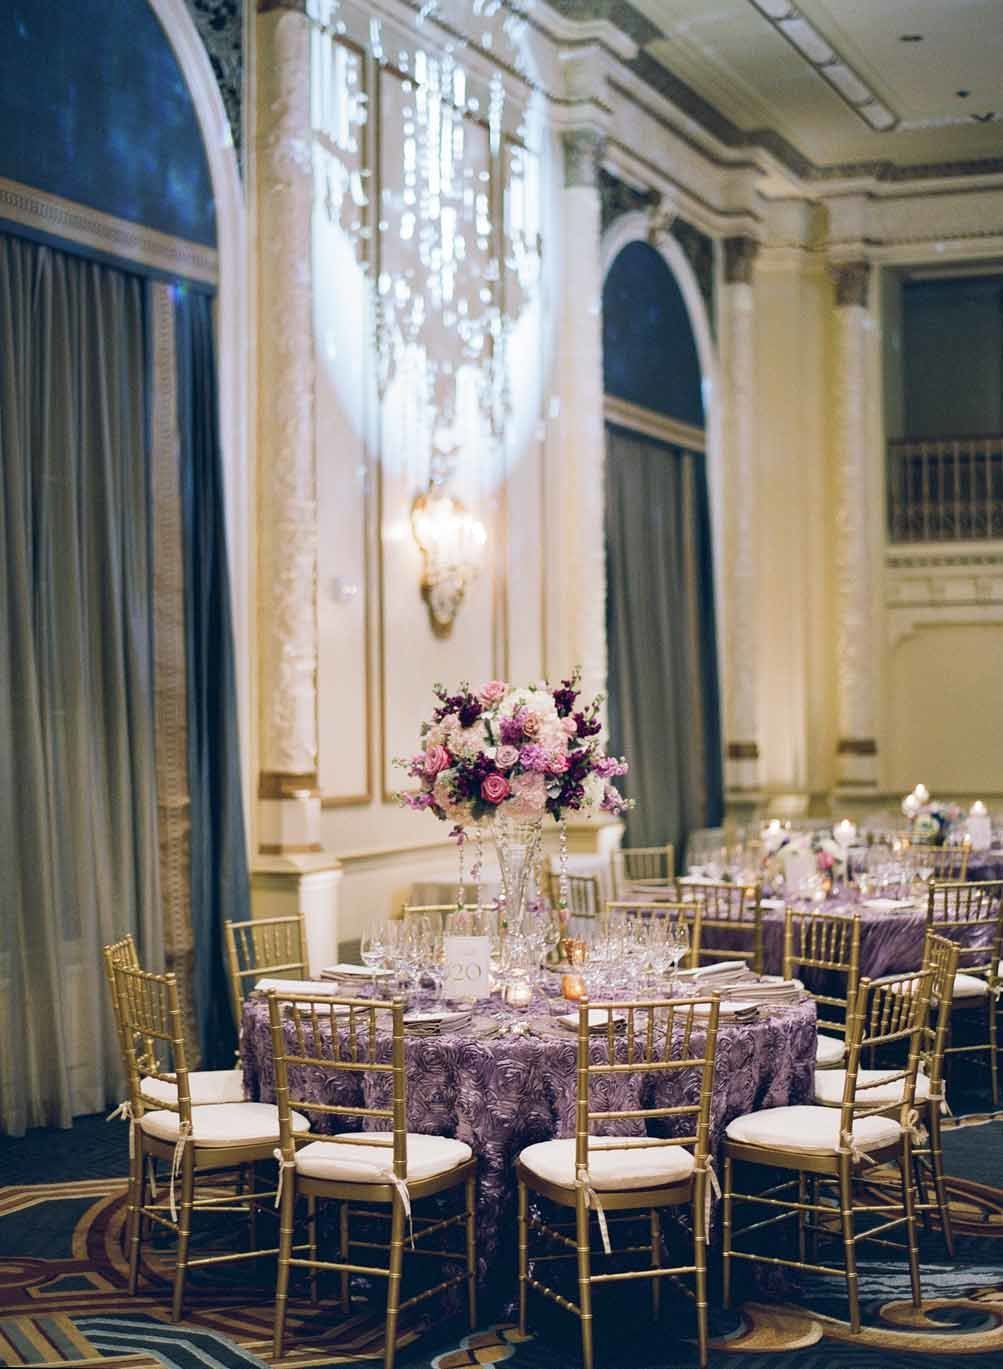 Elegant purple wedding reception at Fairmont Olympic hotel in Seattle.